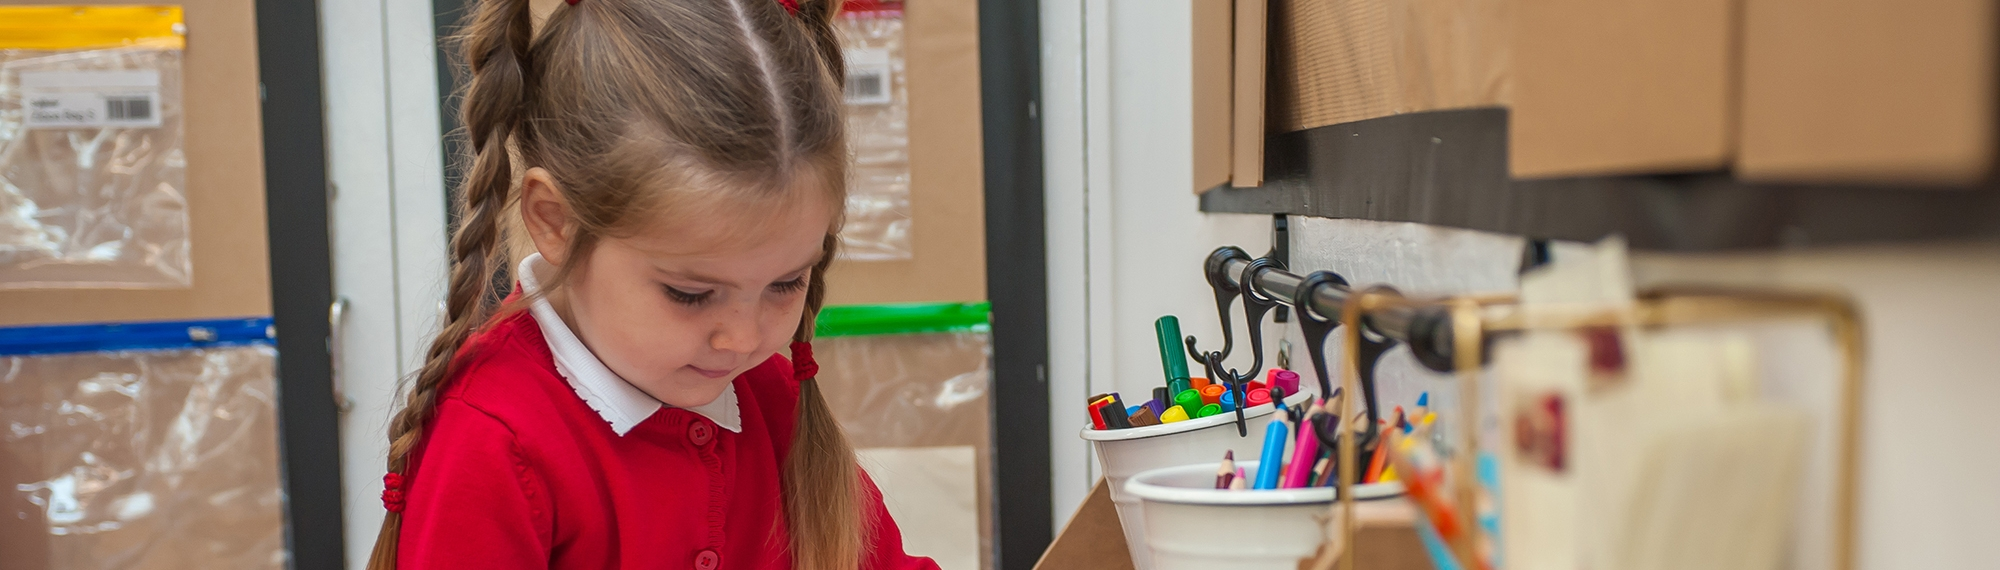 Moorfield Community Primary School Header Image